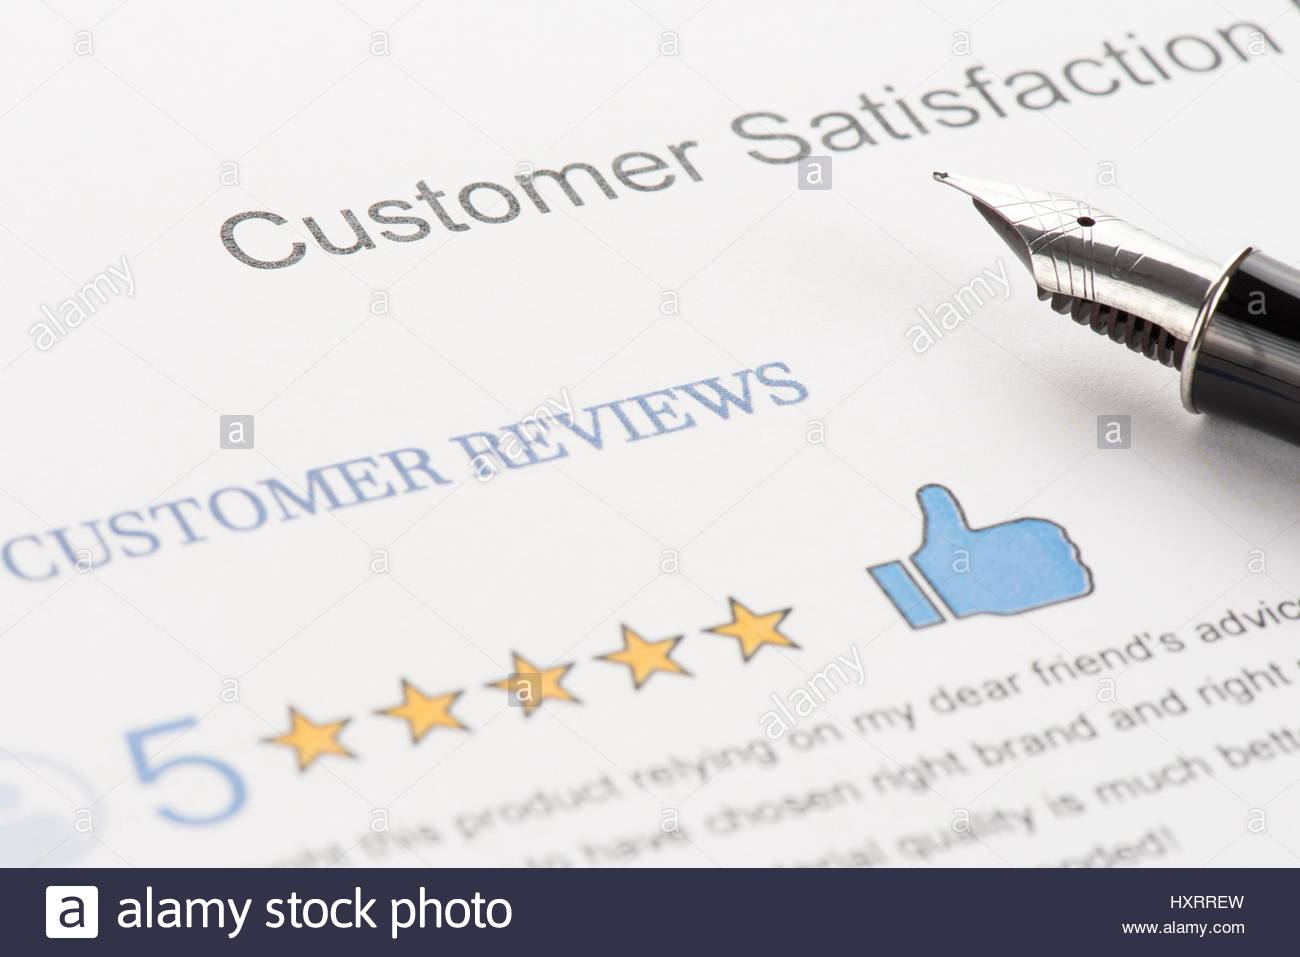 Customer Reviews Attachment to Customer Satisfaction Report - Stock Image